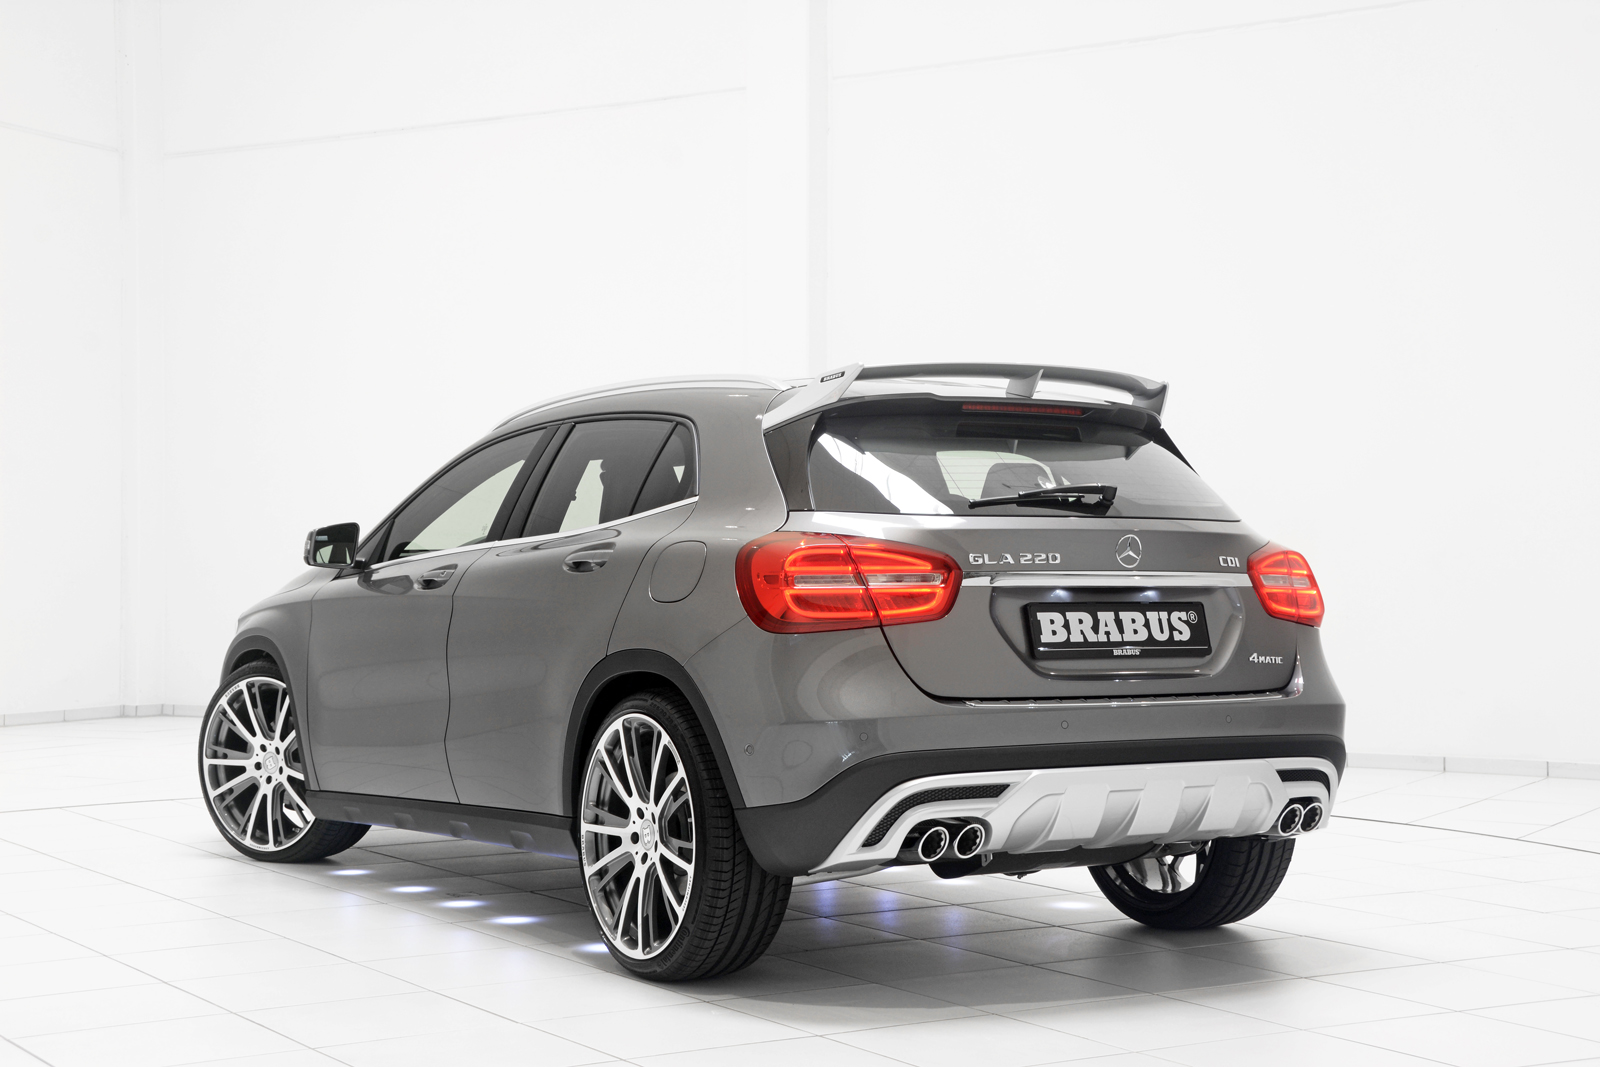 brabus tunes aggression into mercedes benz gla class autoevolution. Black Bedroom Furniture Sets. Home Design Ideas